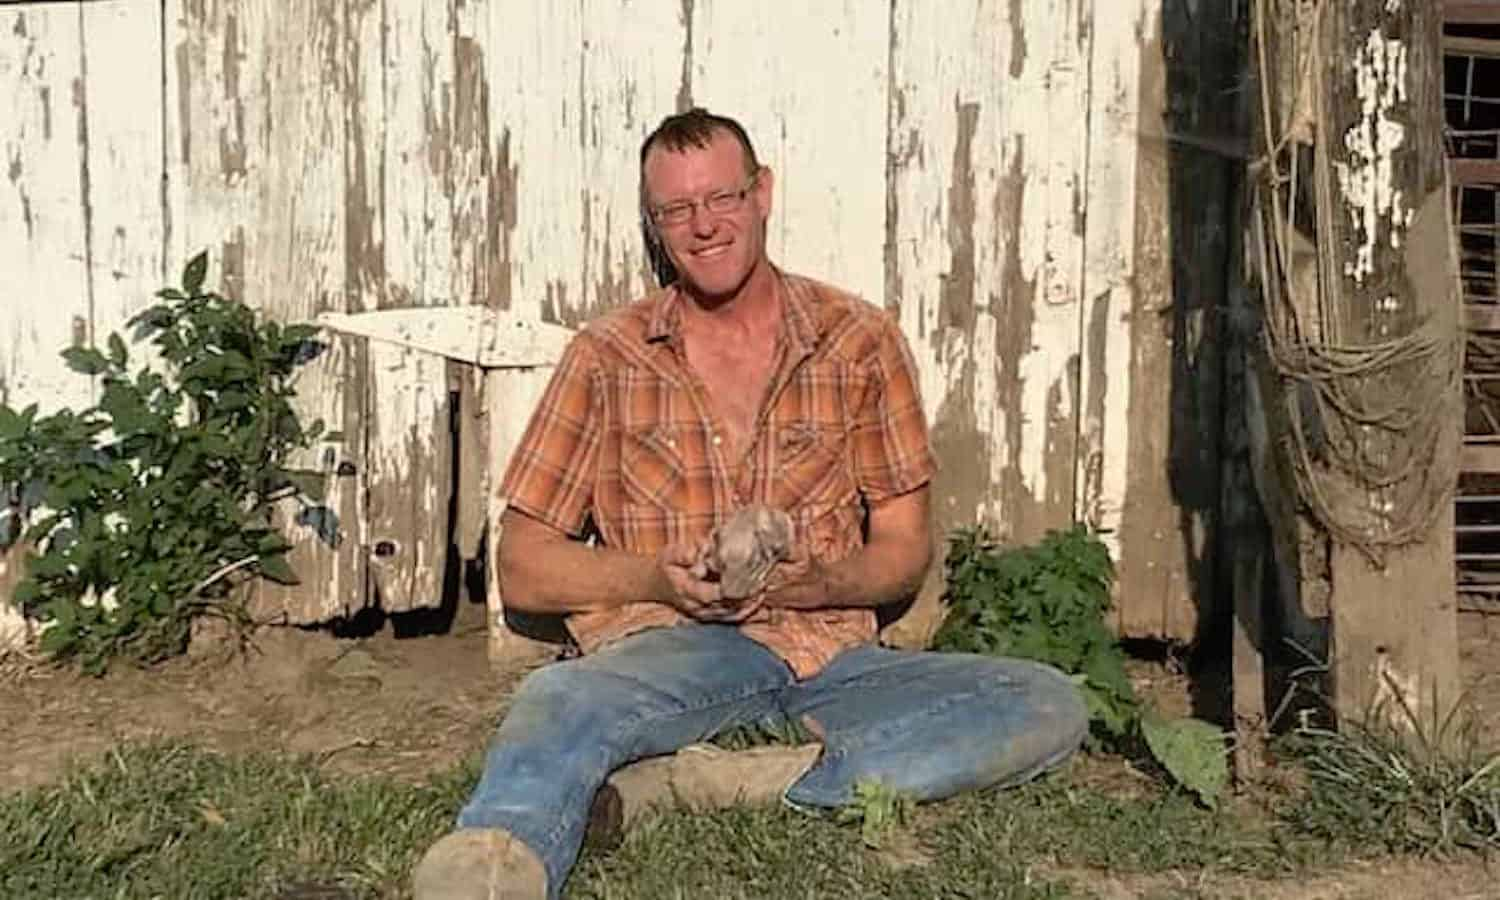 Niman Ranch farmer Steve Howe describes his farm's reach into the community, with sustainable practices and opportunities for the next generation.